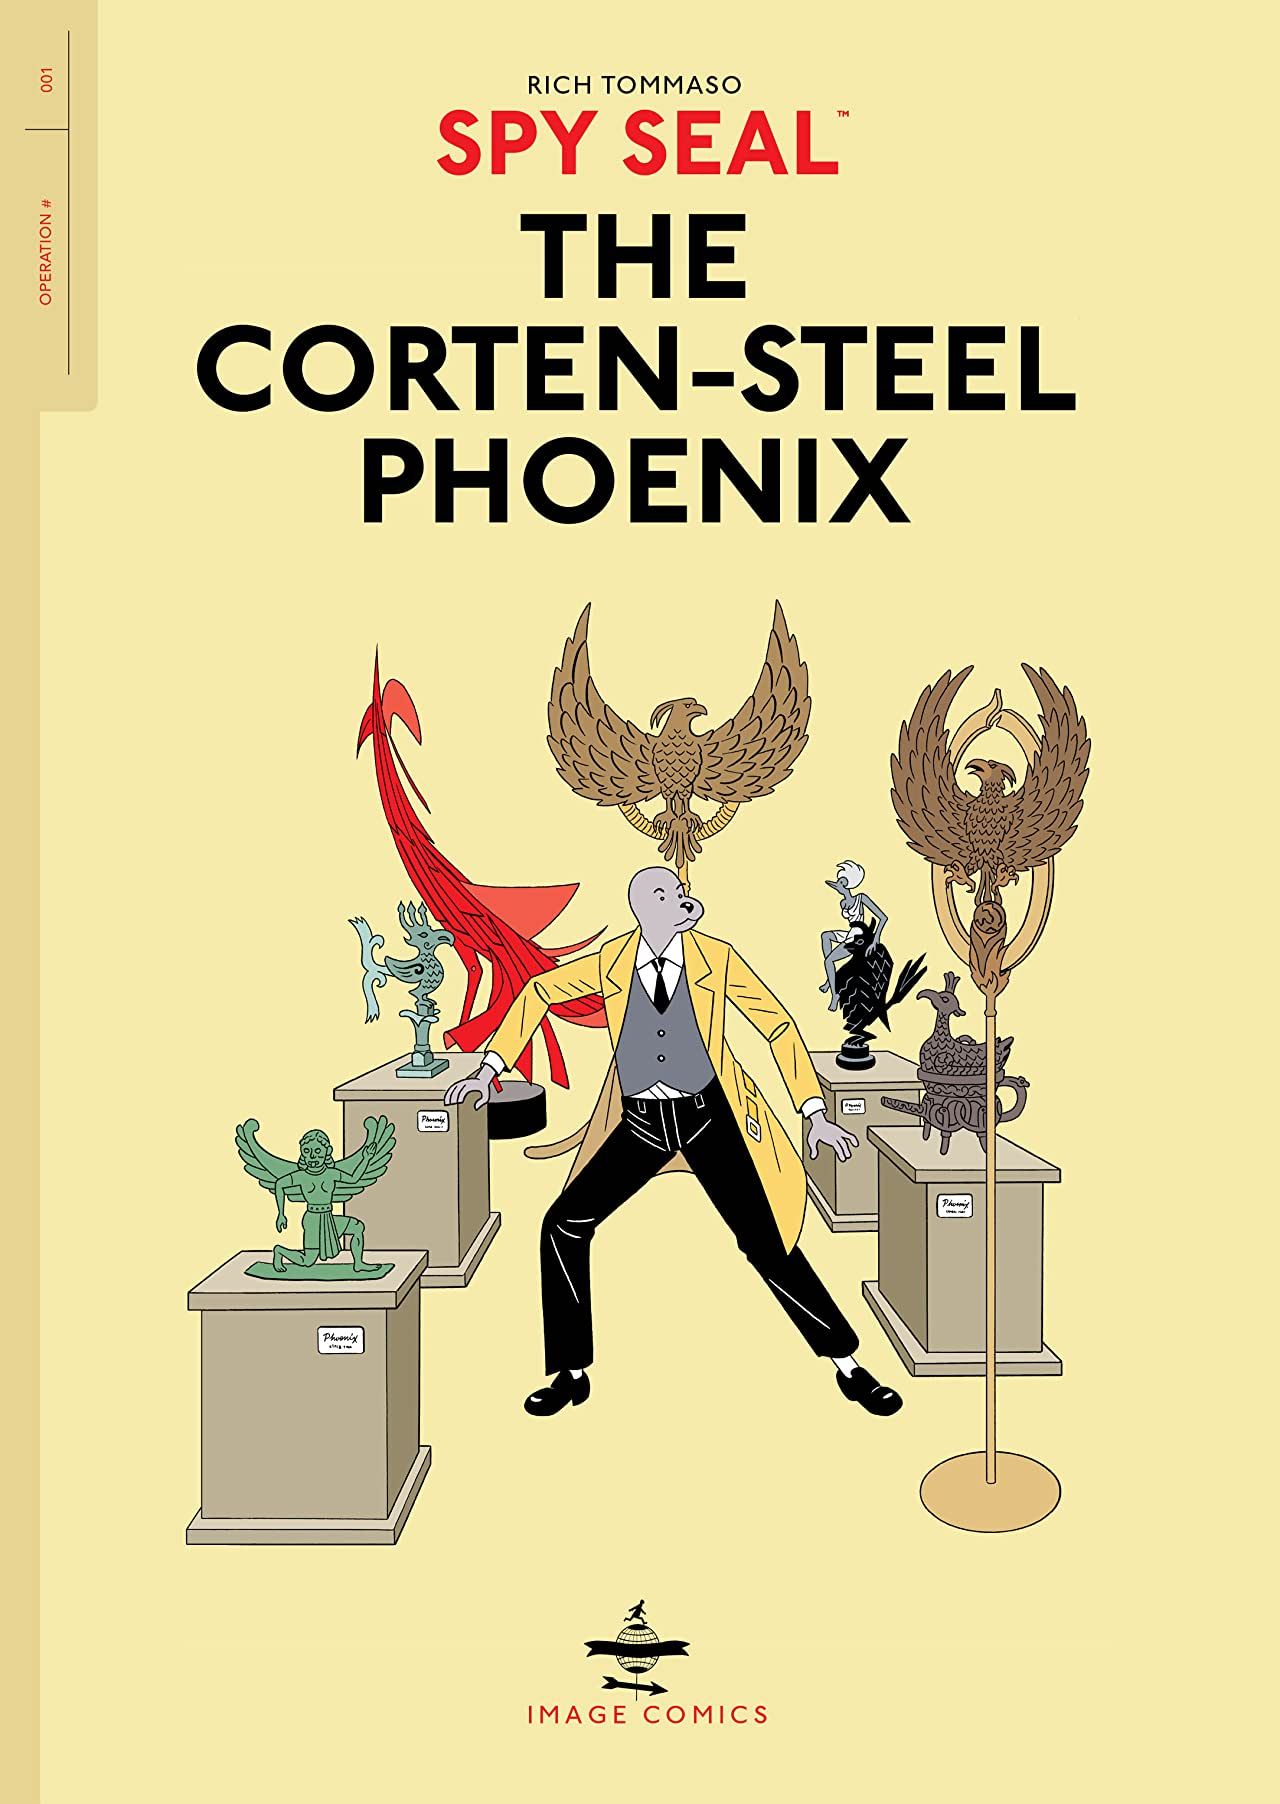 Spy Seal Vol. 1: The Corten-Steel Phoenix